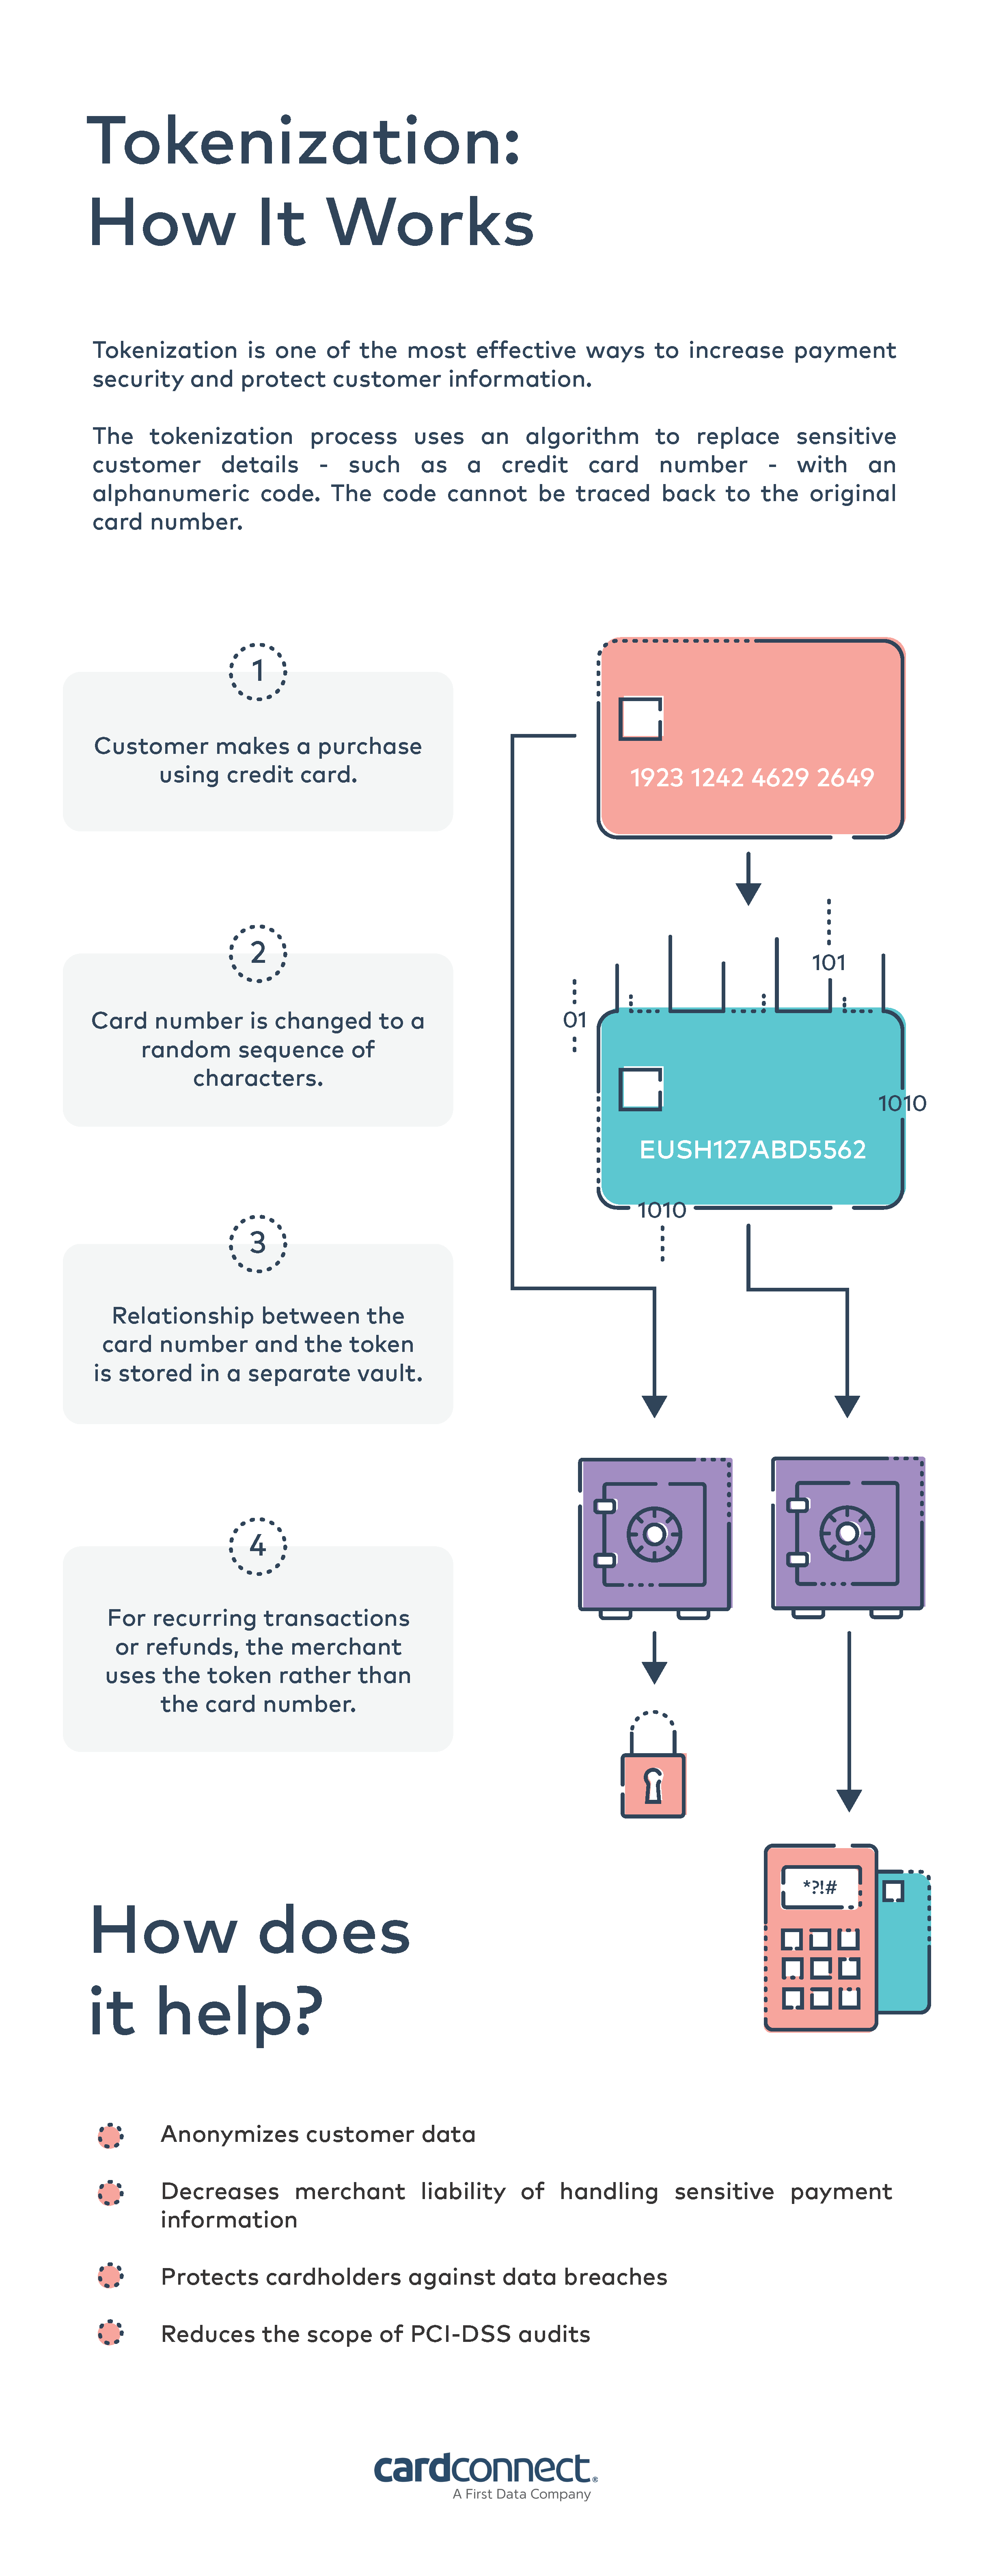 Tokenization: How it works infographic indicating 4 phases of tokenization; Customer purchase, card number randomized, card and token relationship stored in separate vault, token used for recurring transactions or refunds